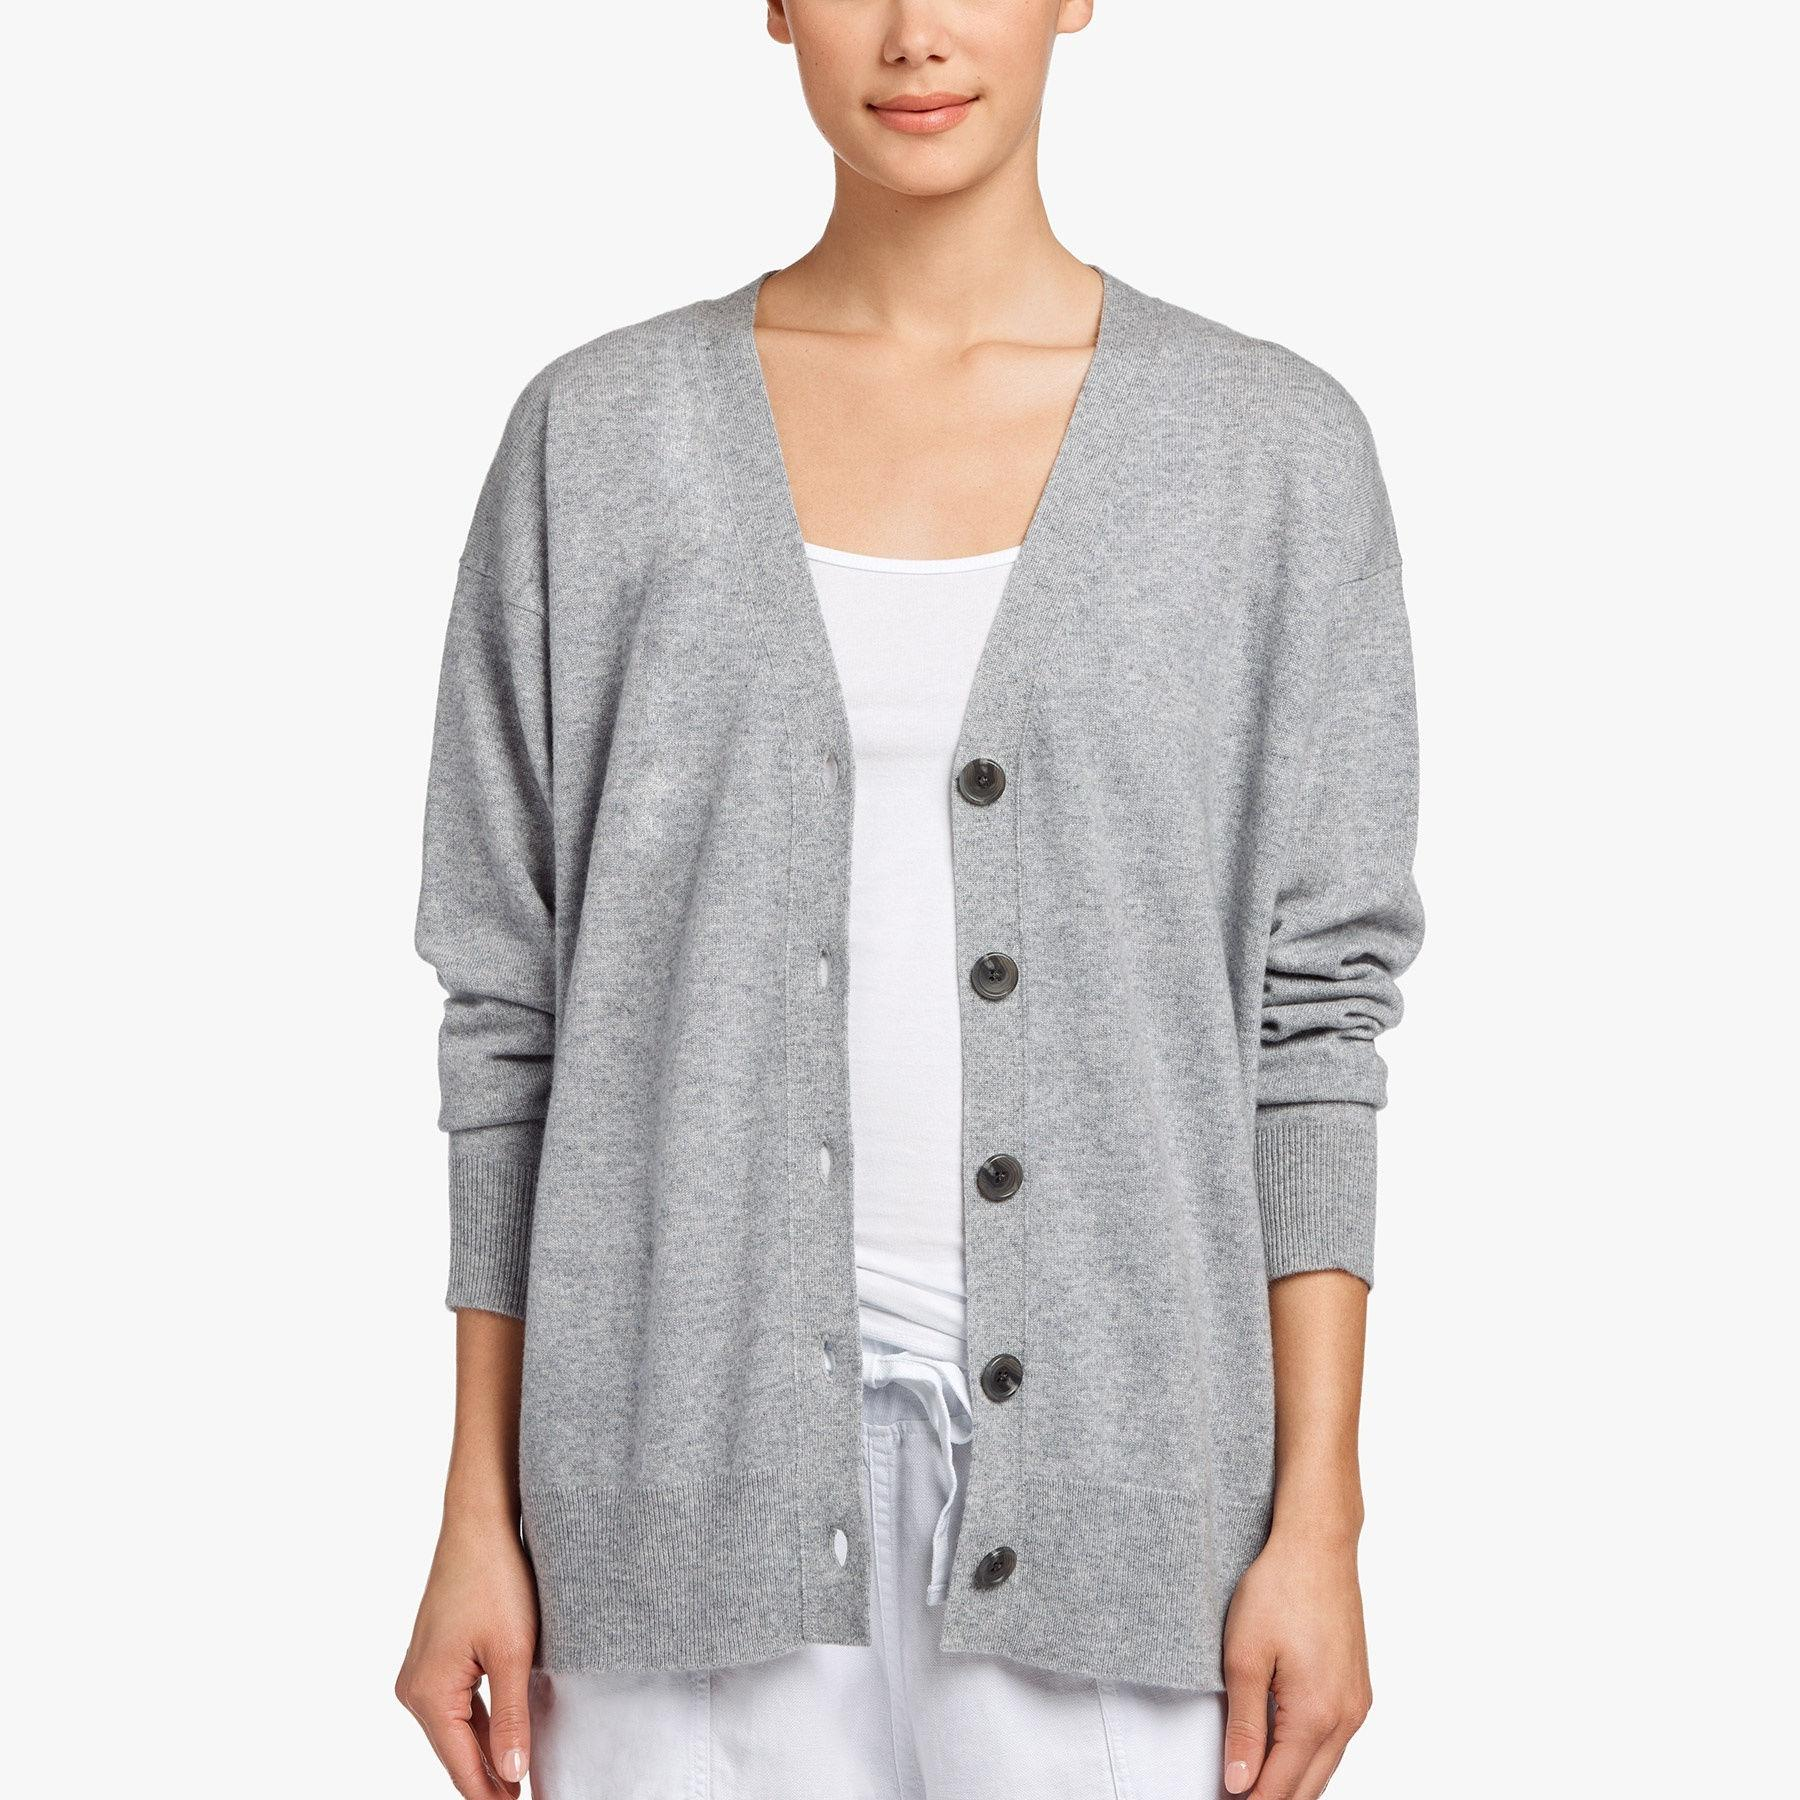 270d44289 Lyst - James Perse Baby Cashmere Cardigan in Gray